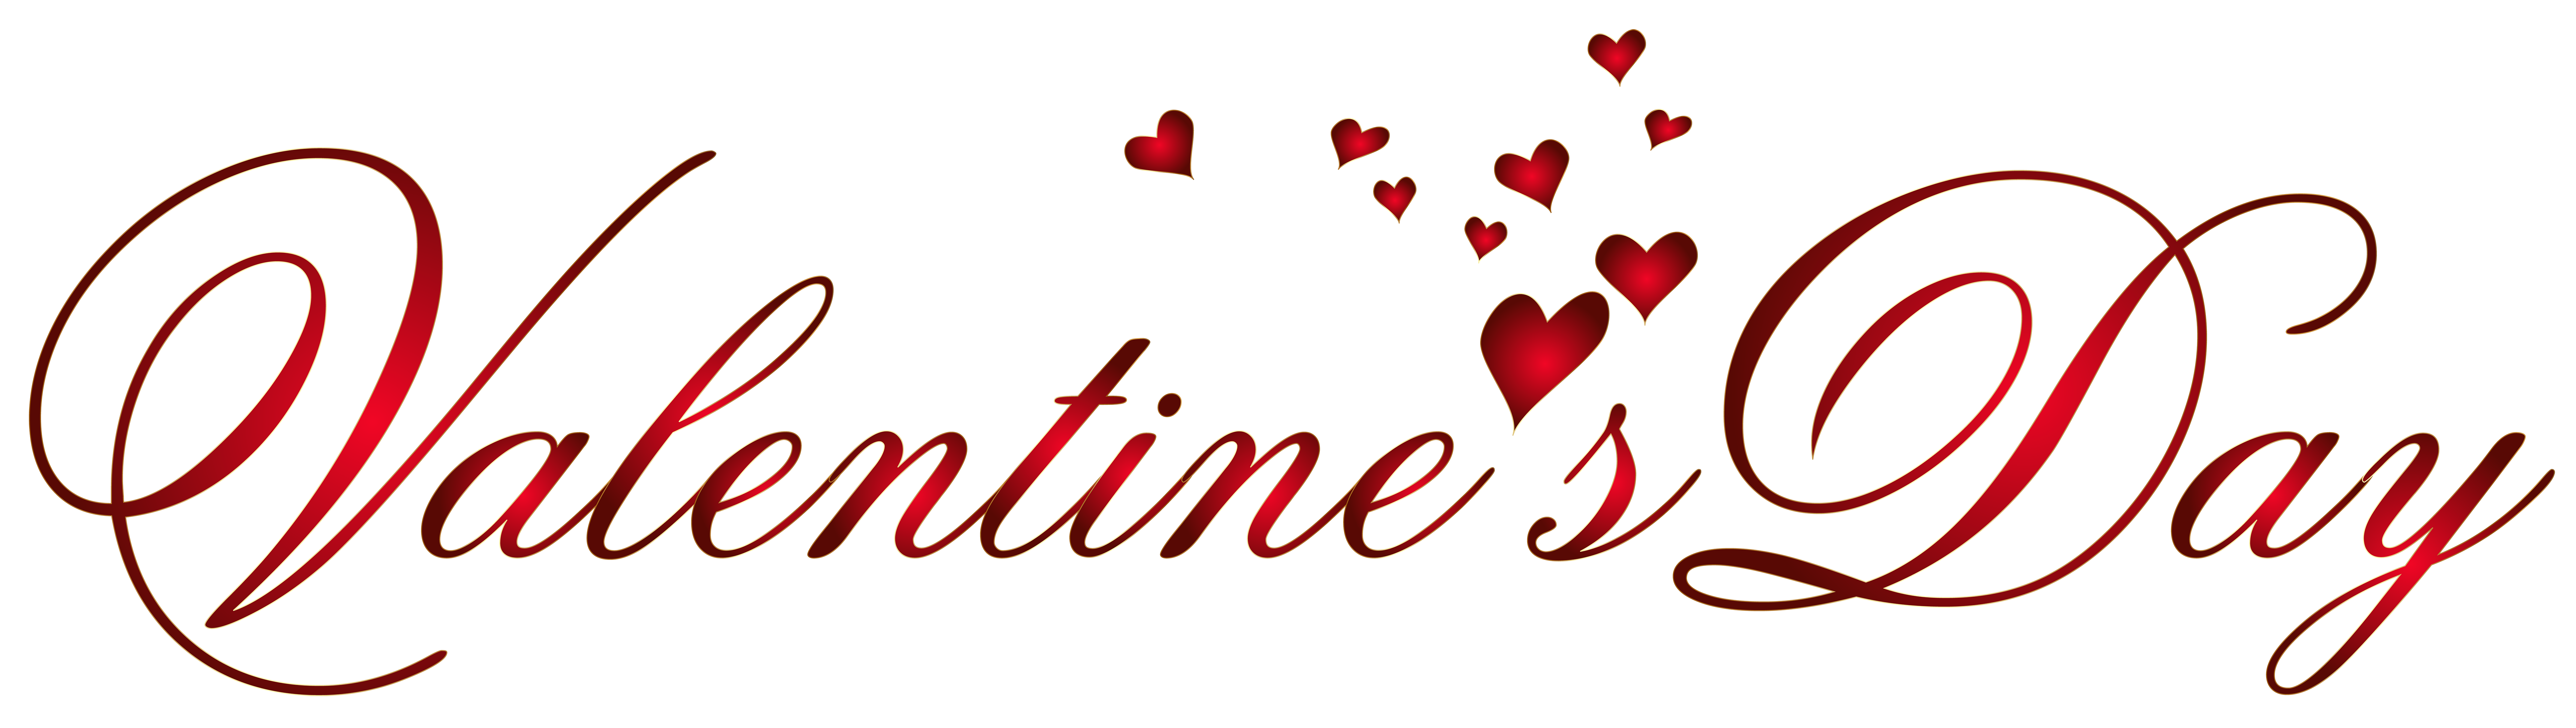 Valentine S Day Transparent Png Clip Art Image Gallery Yopriceville High Quality Images And Transparent Png In 2021 Clip Art Art Images Images For Valentines Day